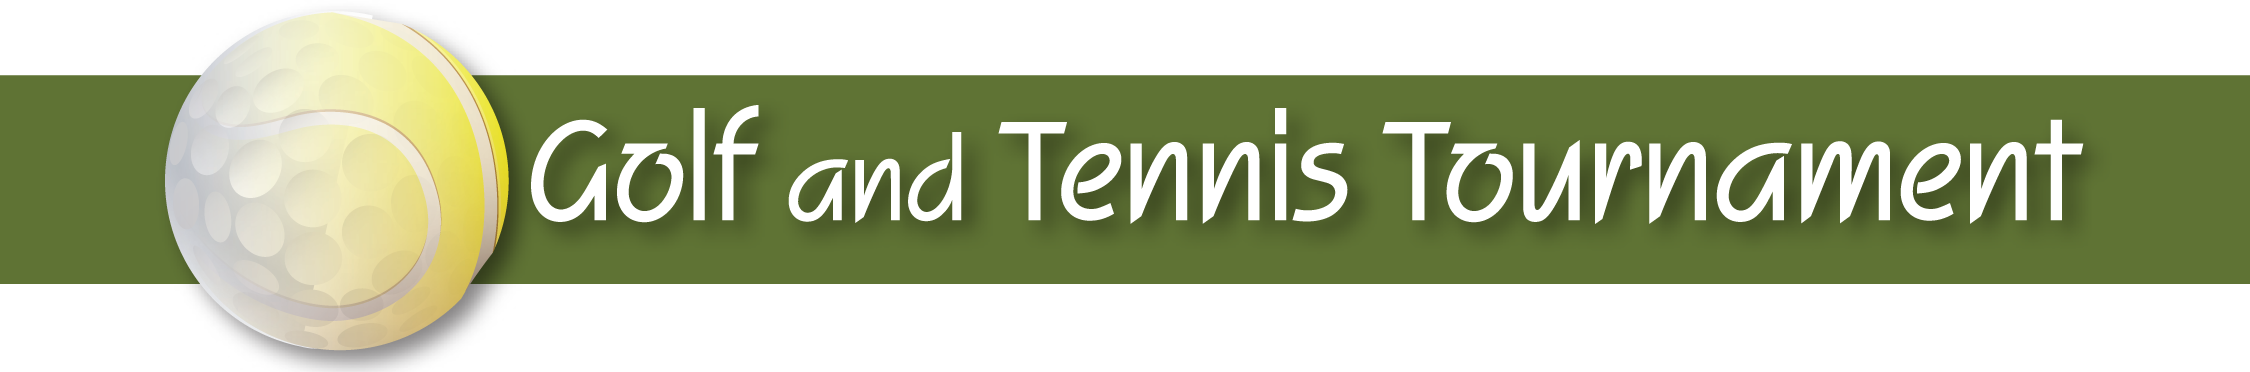 Golf and Tennis Tournament Registration